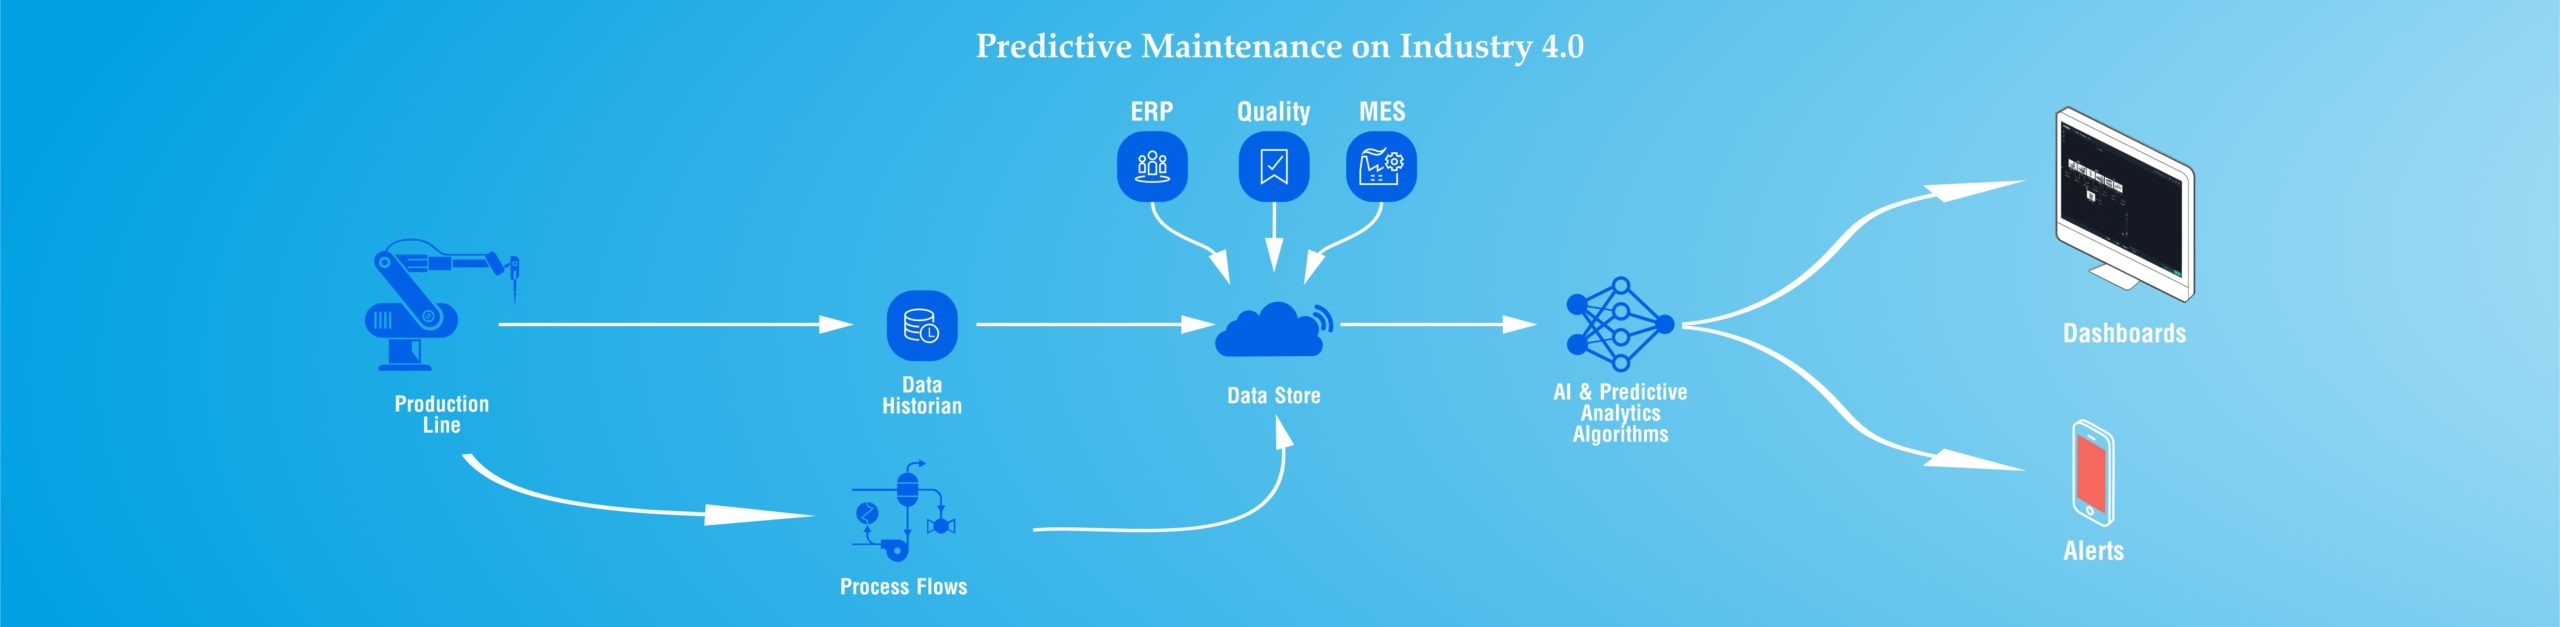 Predictive-Maintenance-studies